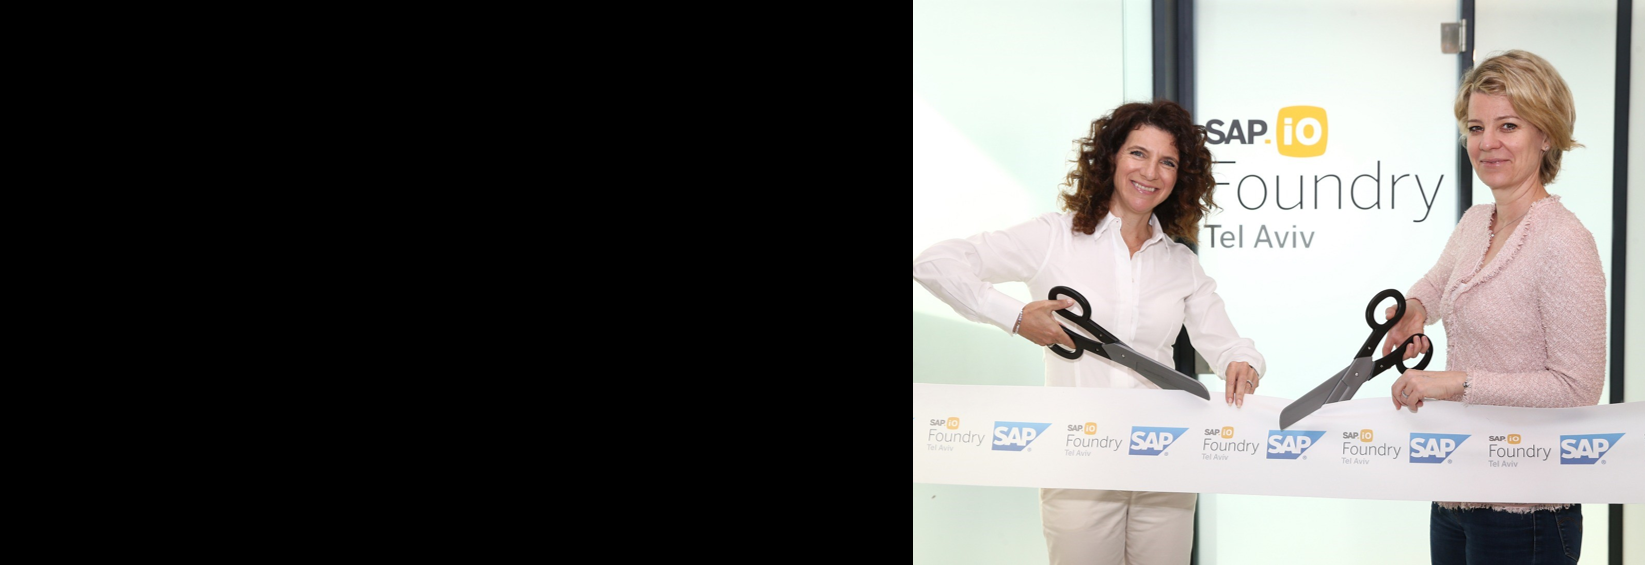 German Multinational SAP Launches 1st Foundry Program in Tel Aviv with 7 Startups